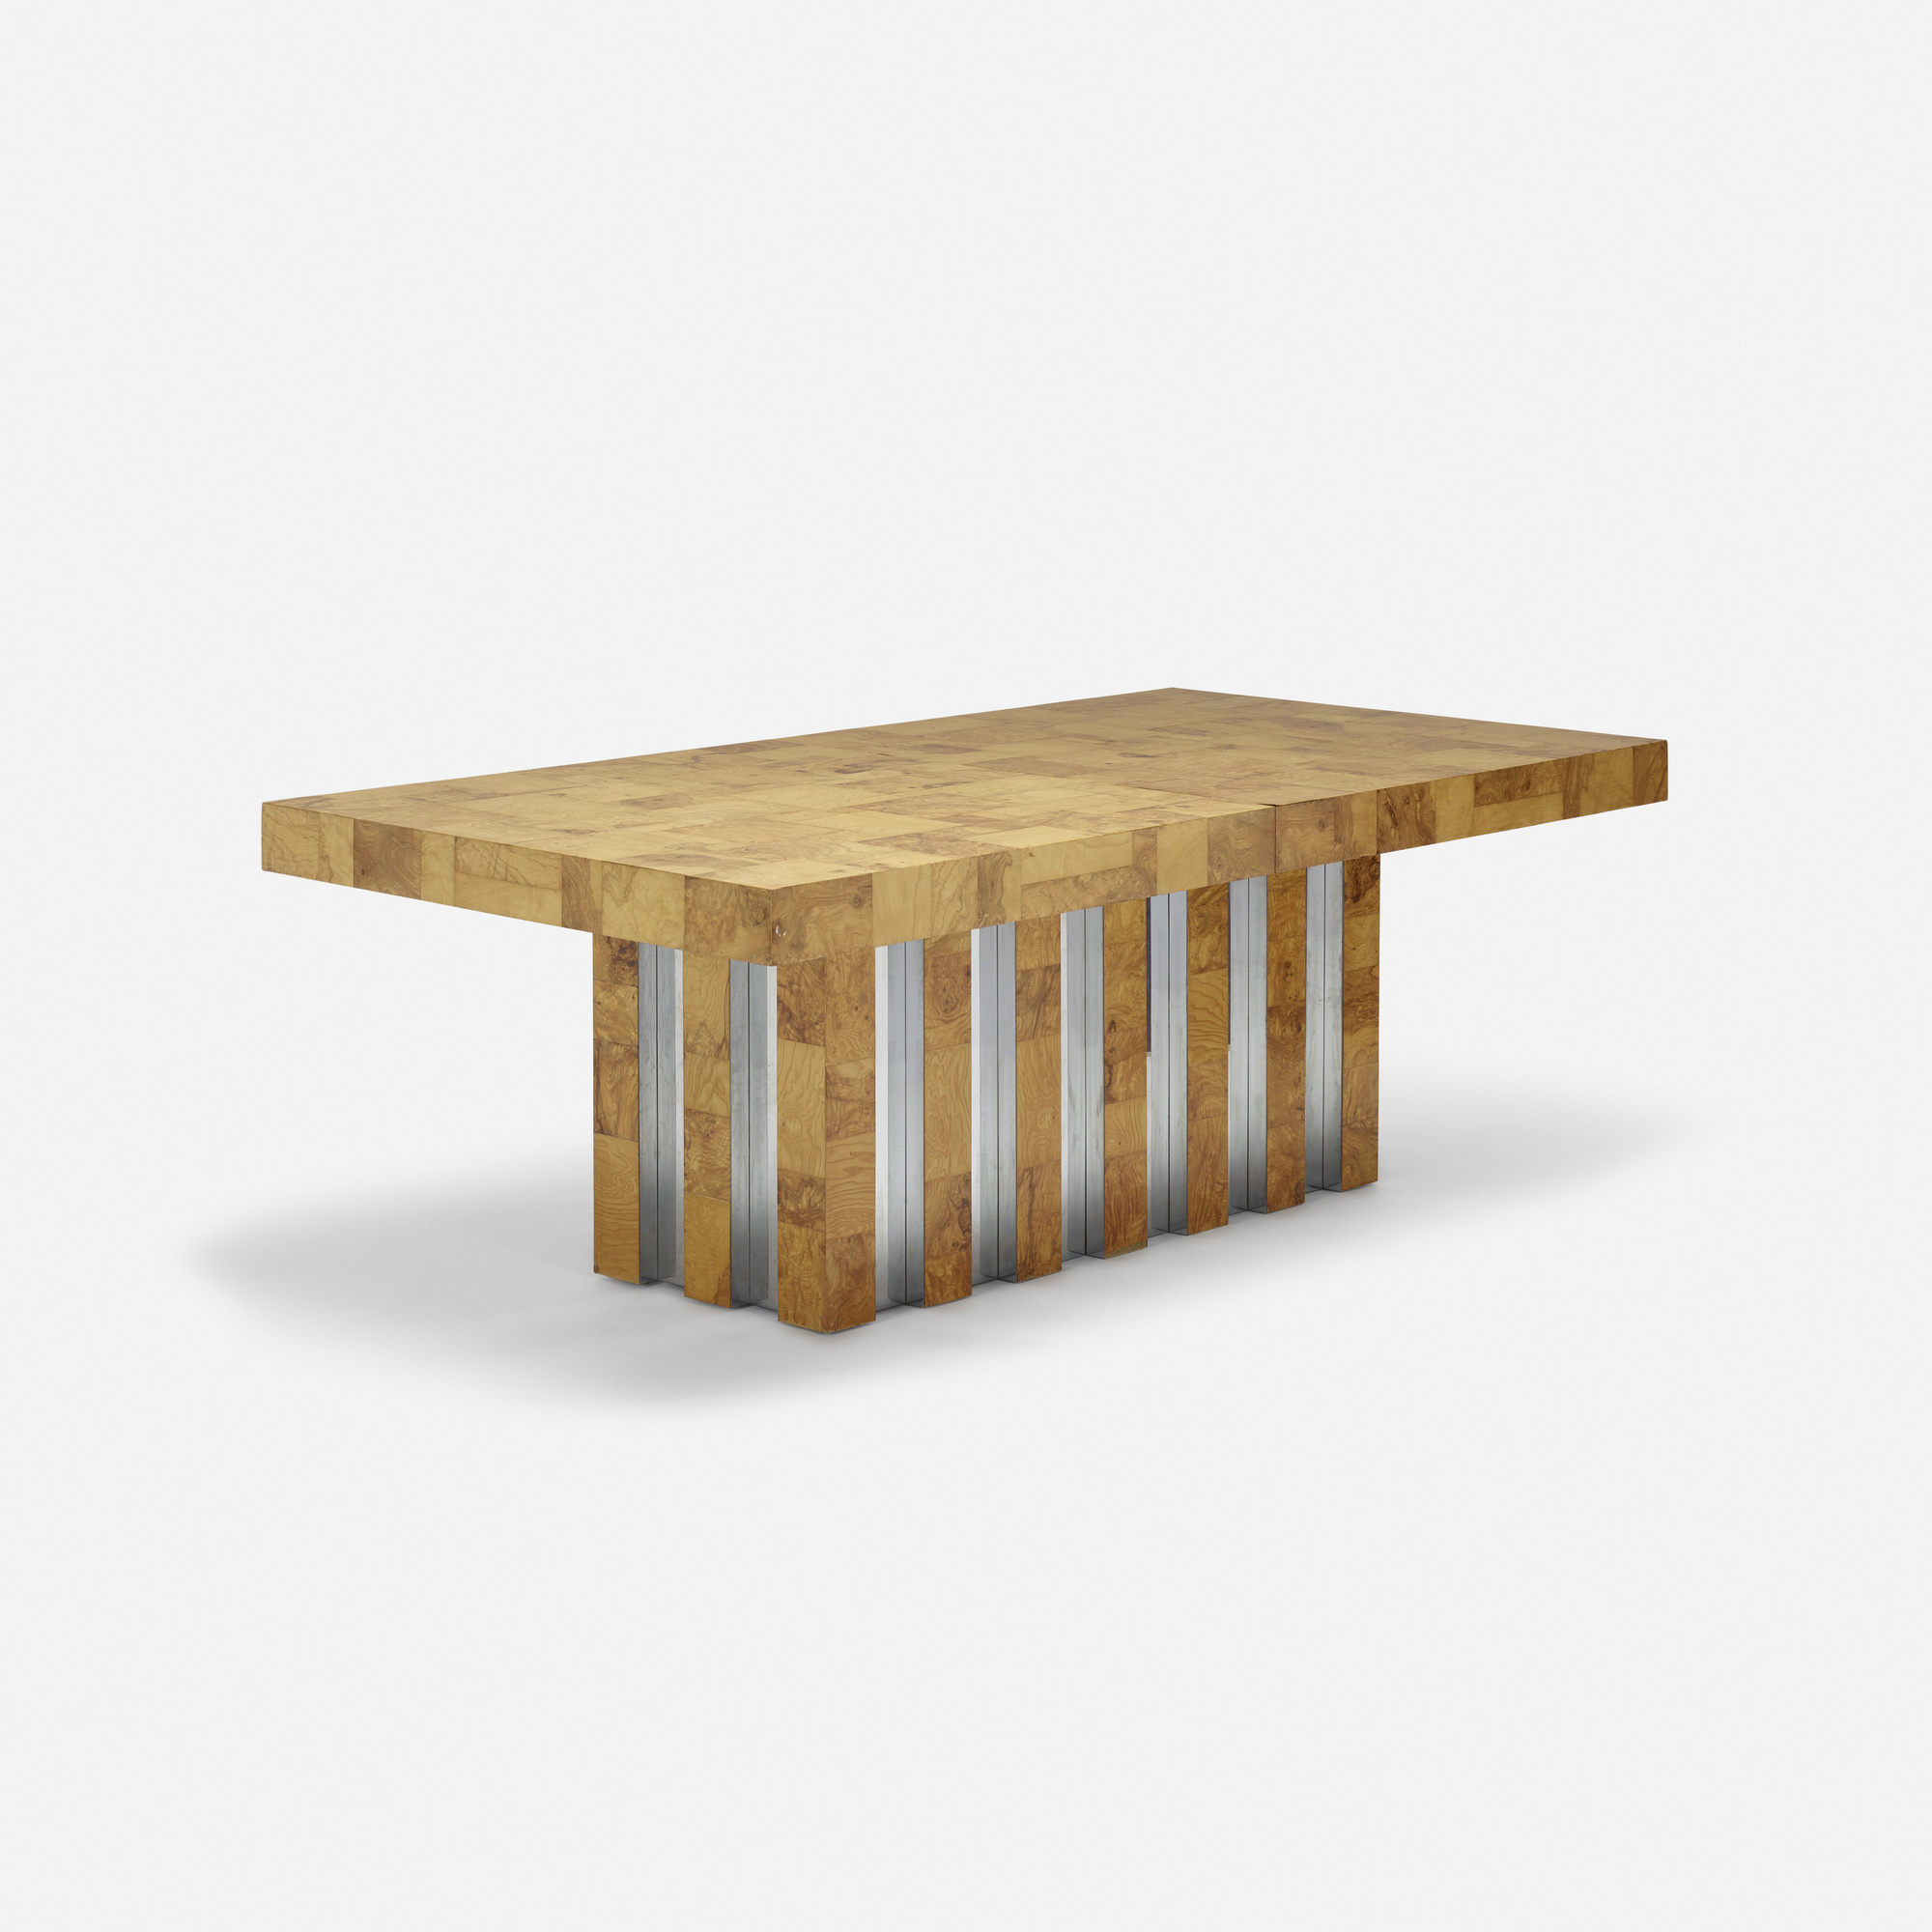 164: Paul Evans / Cityscape dining table (1 of 3)